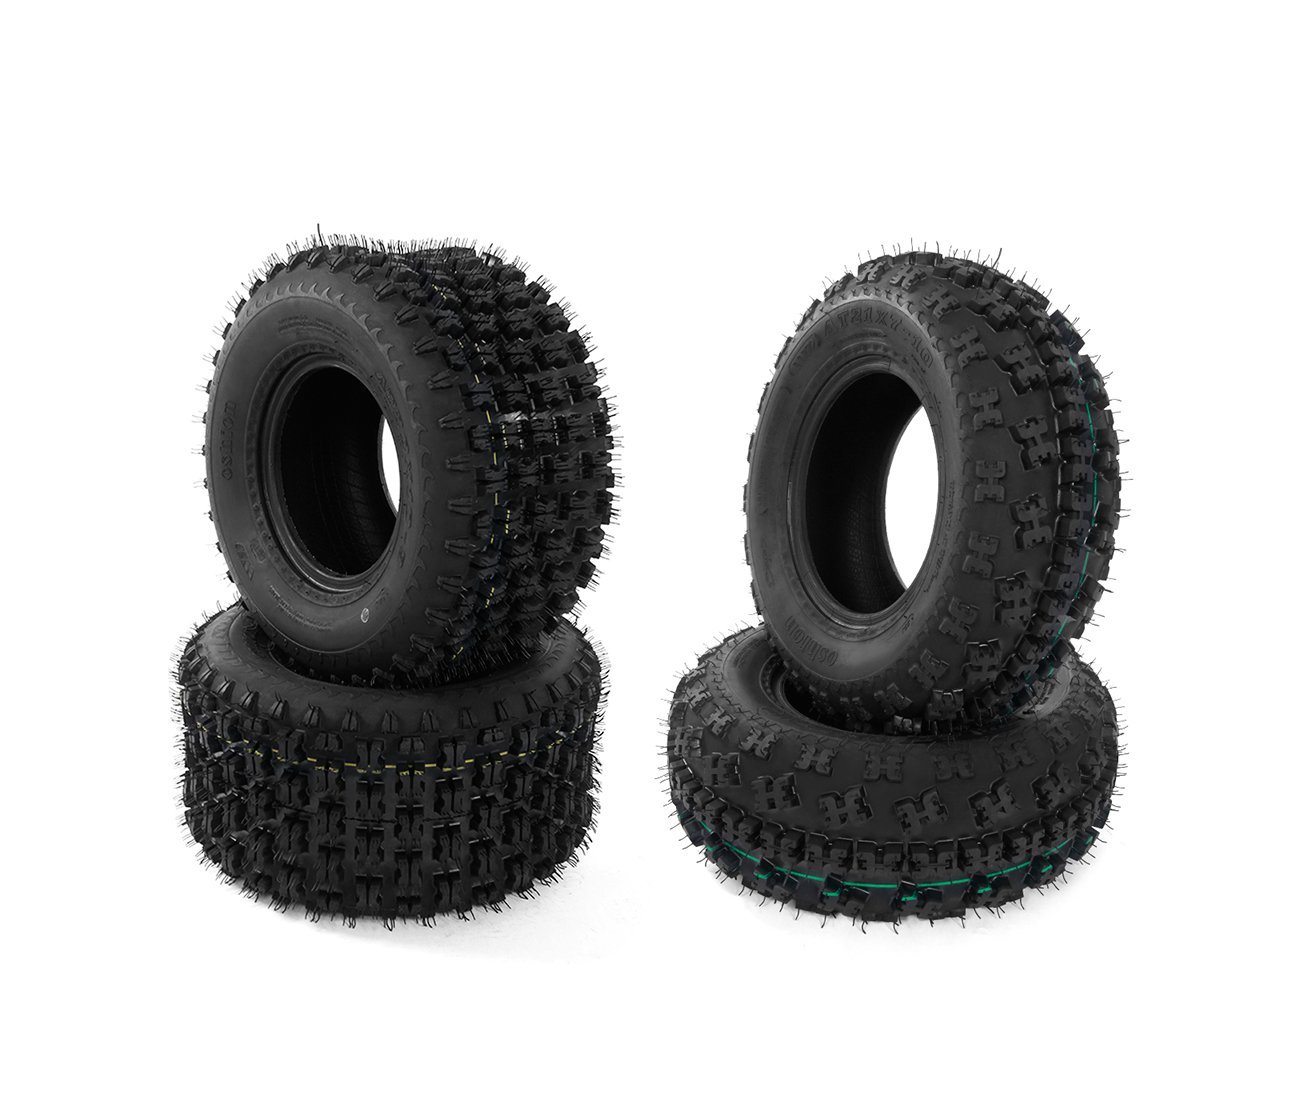 Set of 4 ATV/UTV Tires AT 21X7-10 Front & 20X10-9 Rear